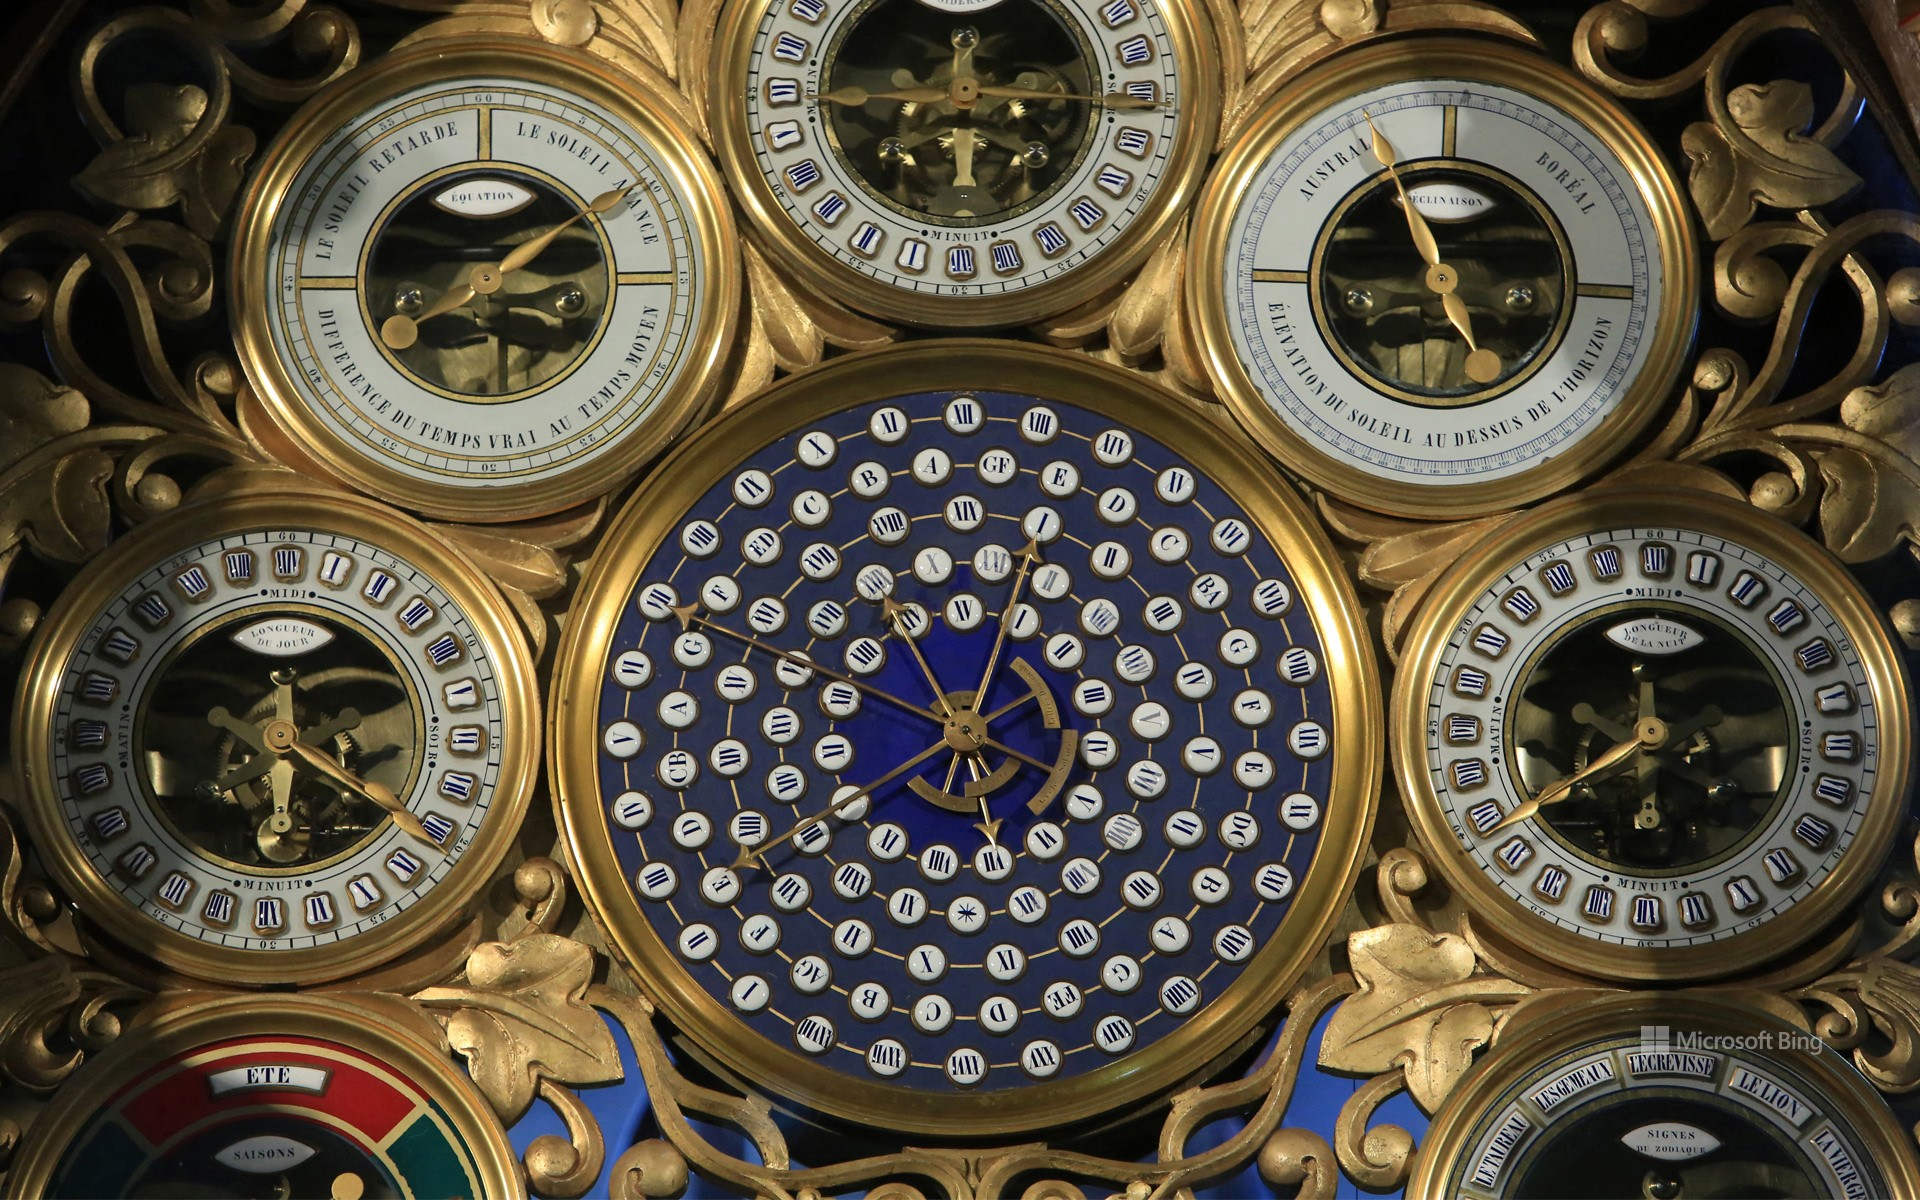 The astronomical clock of Saint-Pierre de Beauvais Cathedral